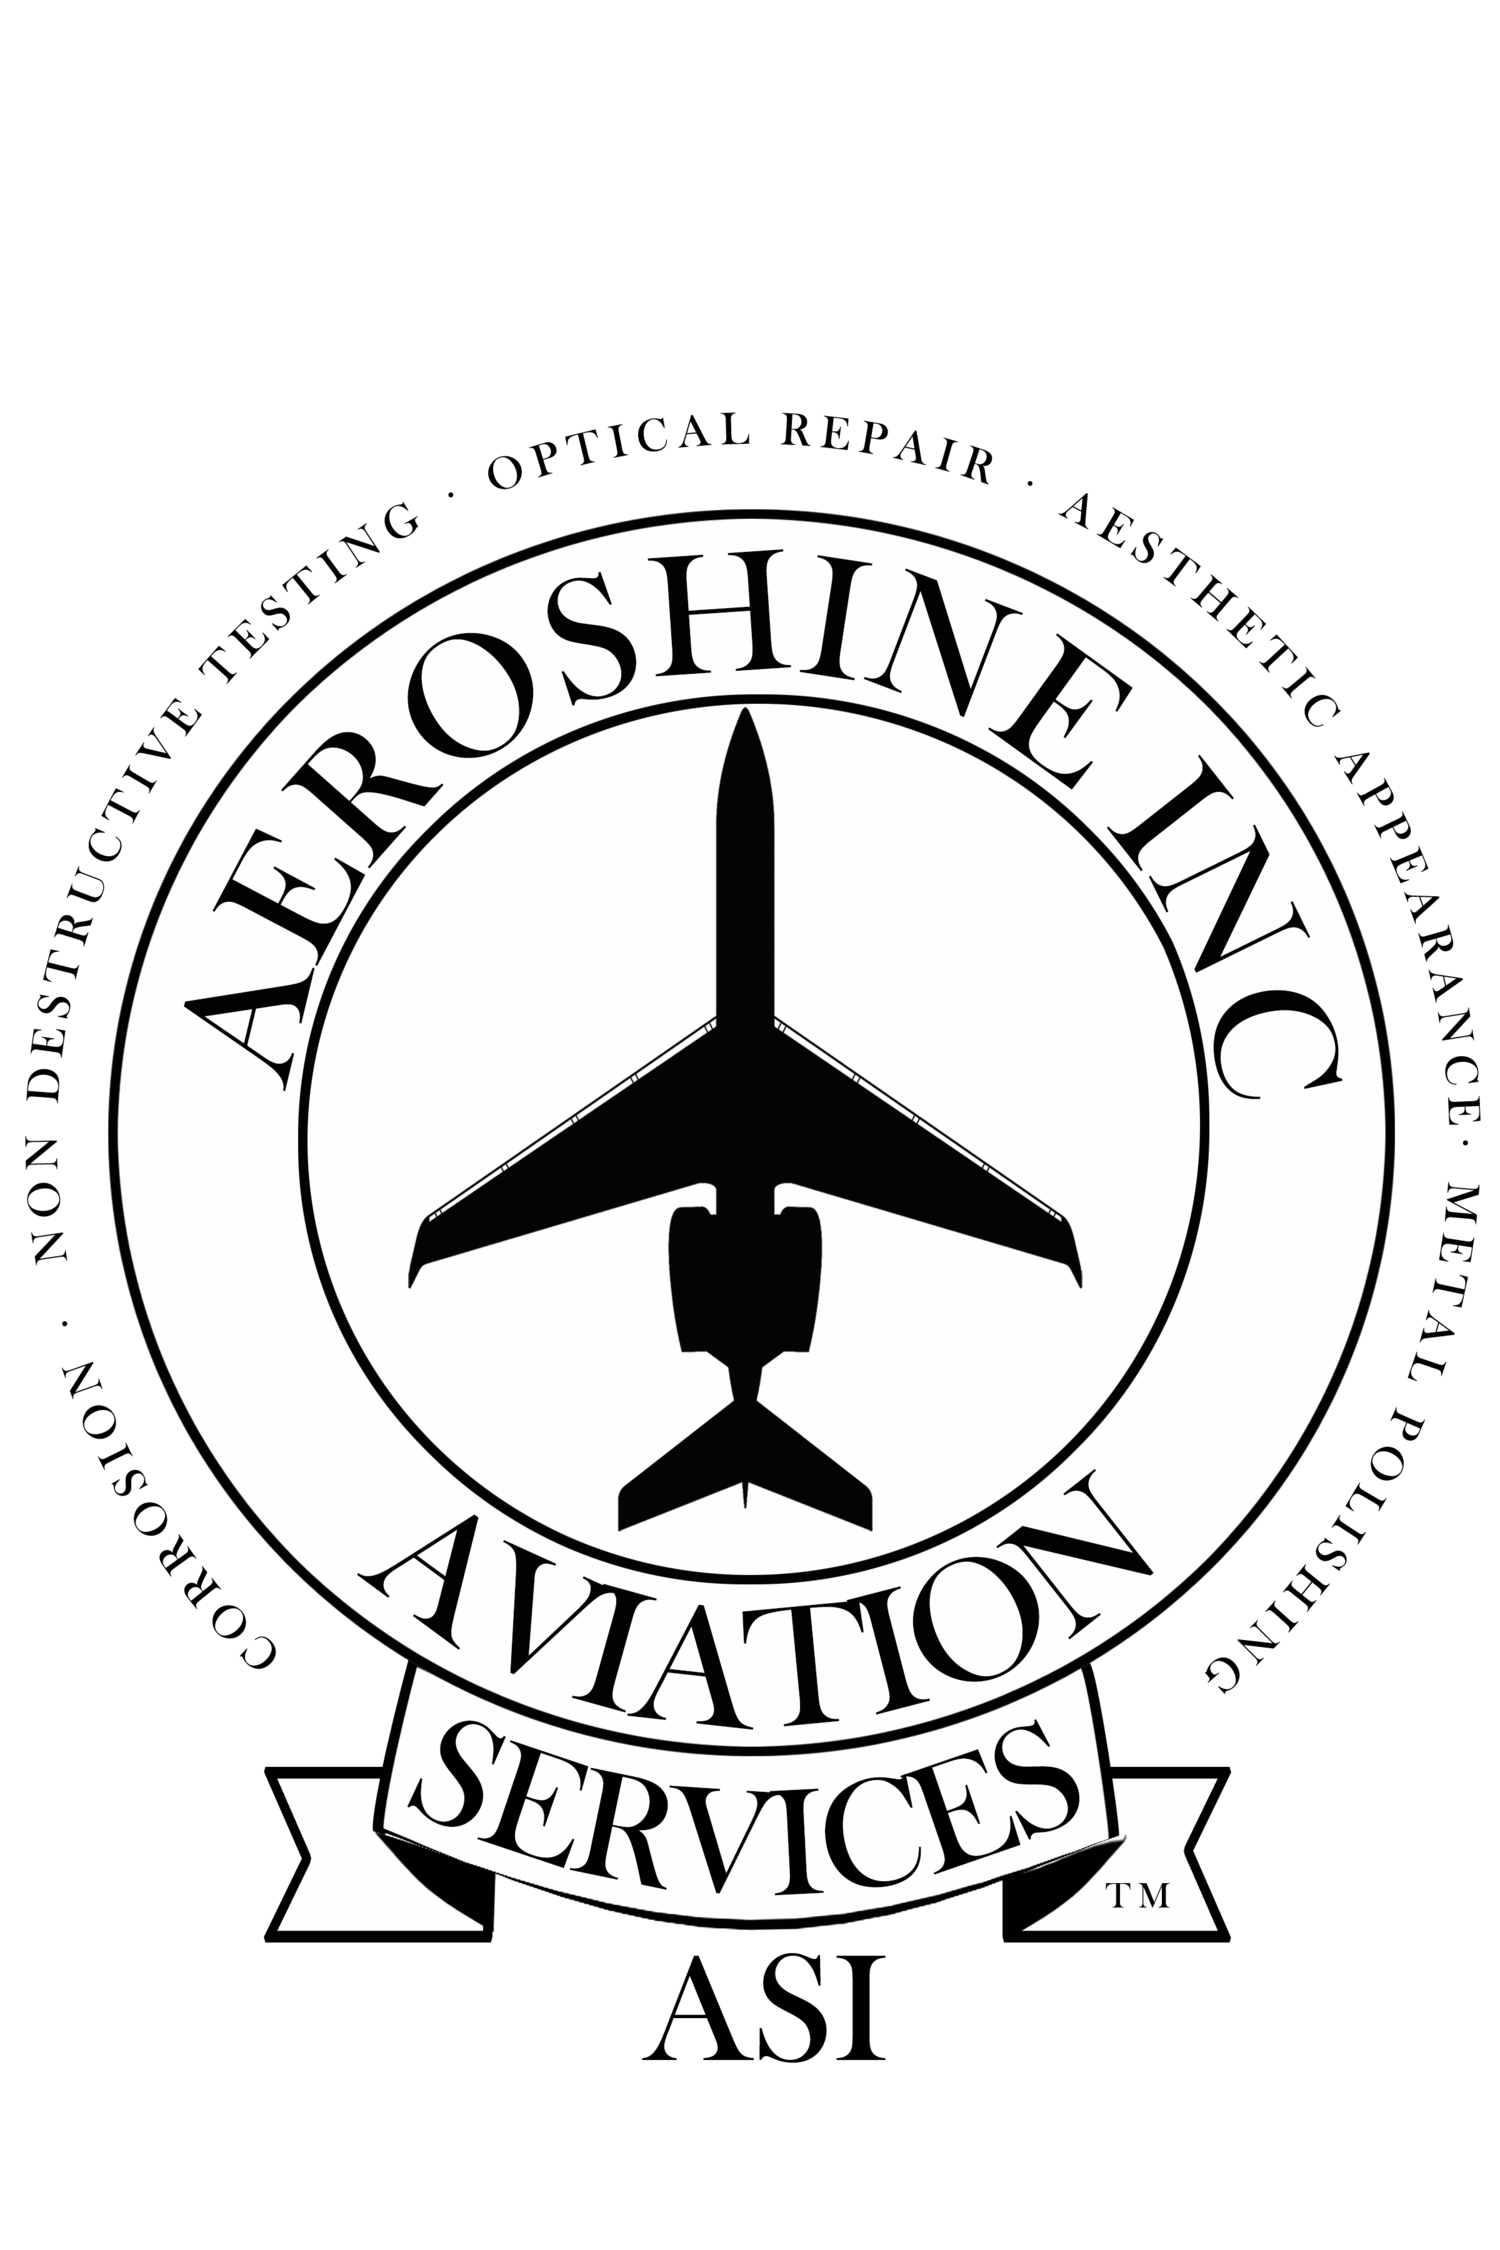 AeroShine, INC